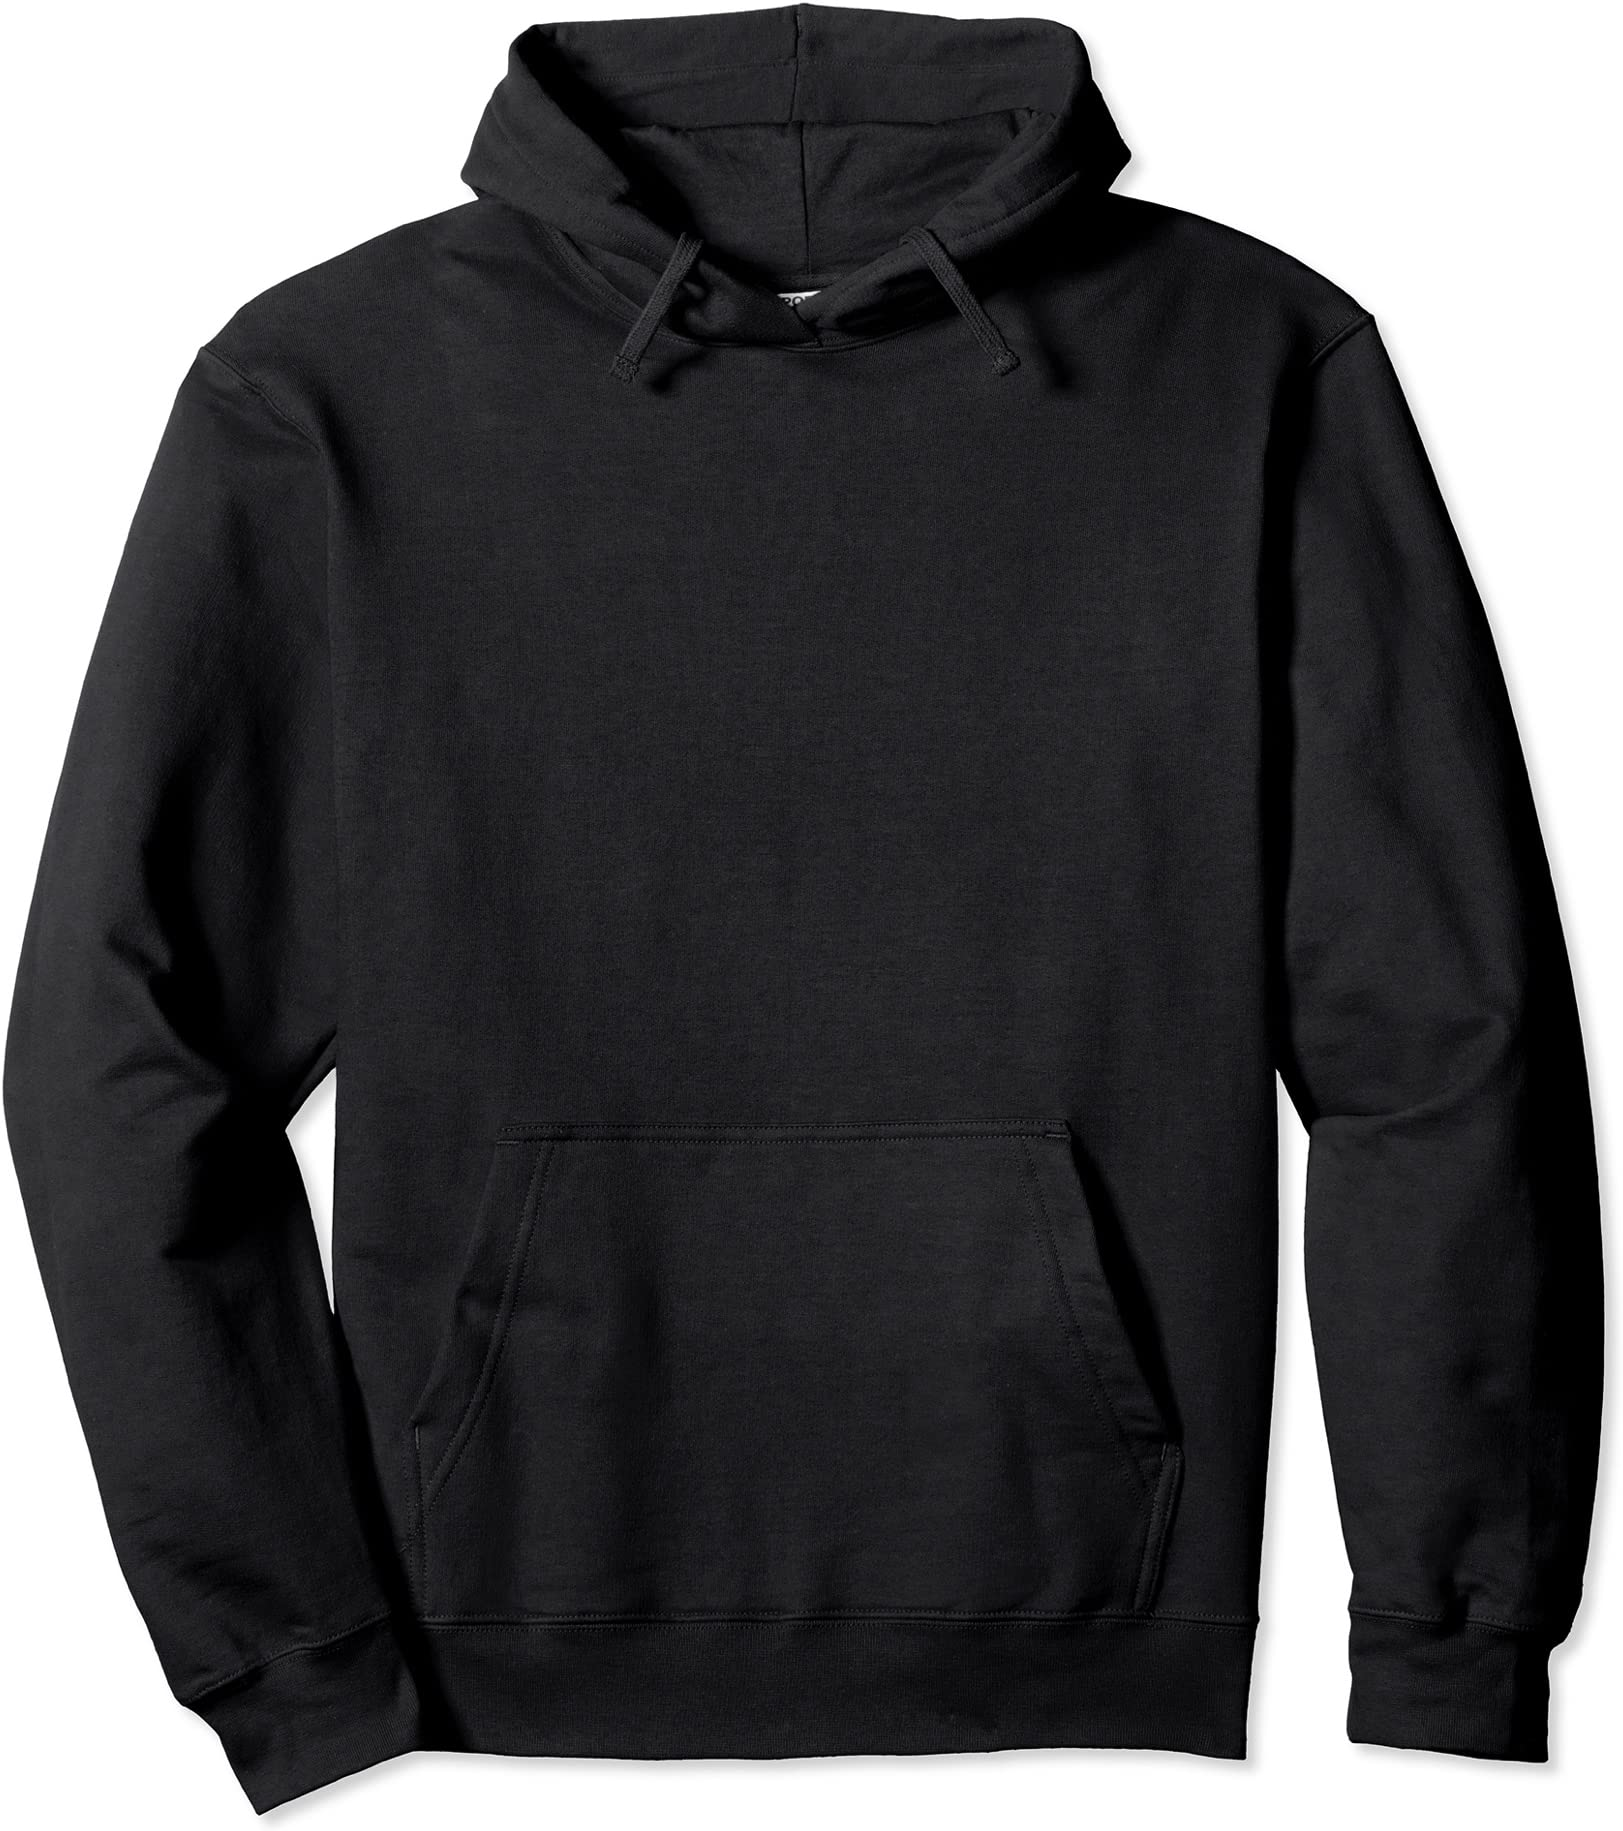 Men/'s Trump 2020 Black Hoodie Donald President Elections America Great  Support